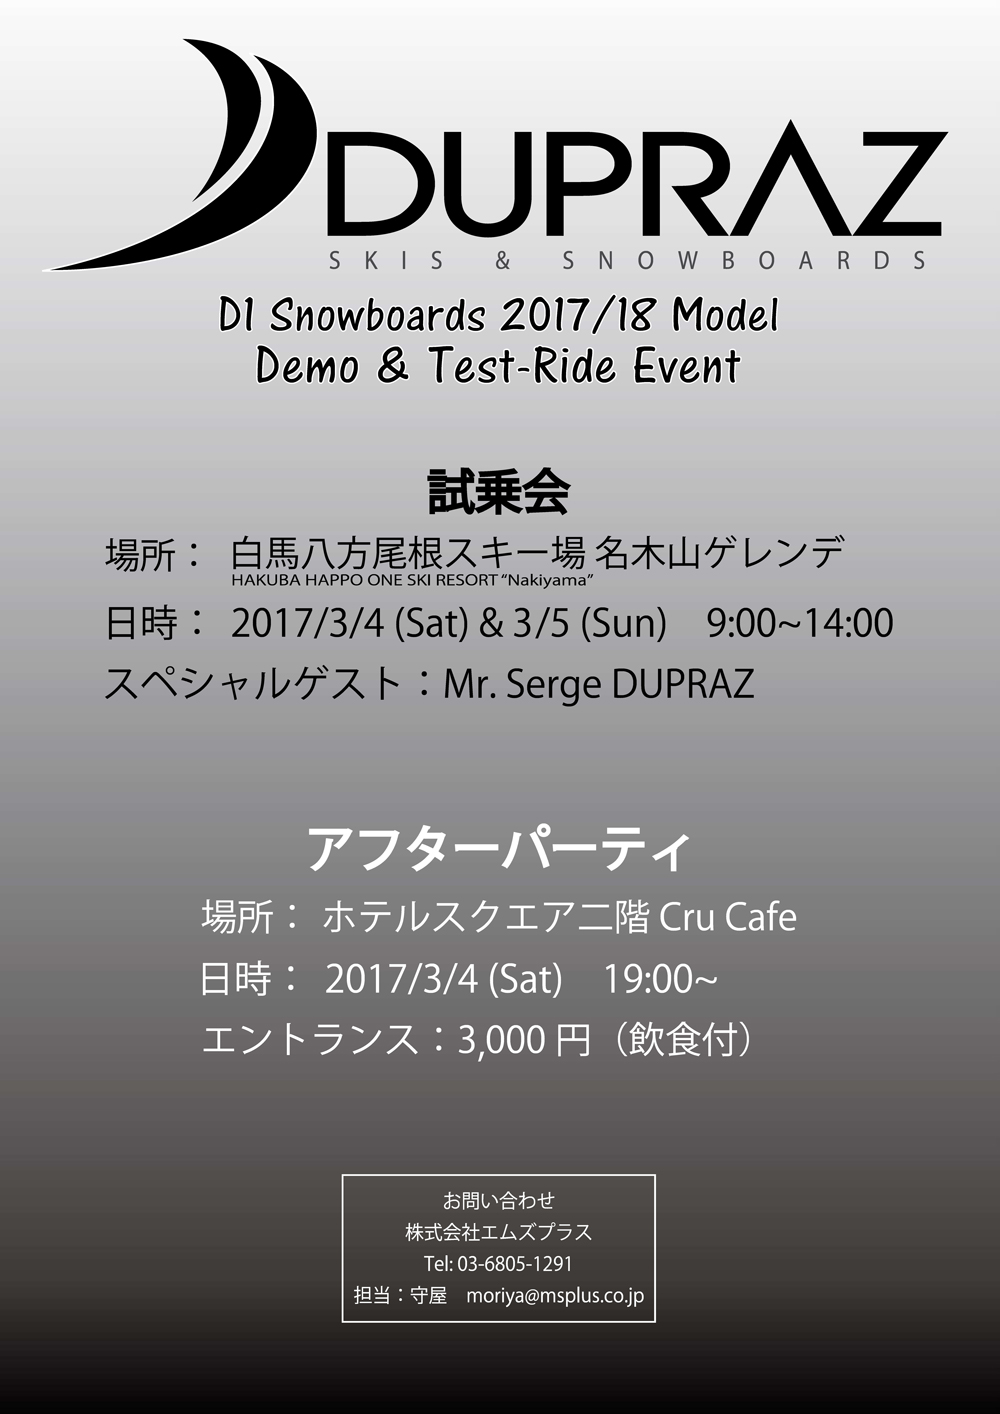 DUPRAZ-Demo-&-Test-Ride-Event